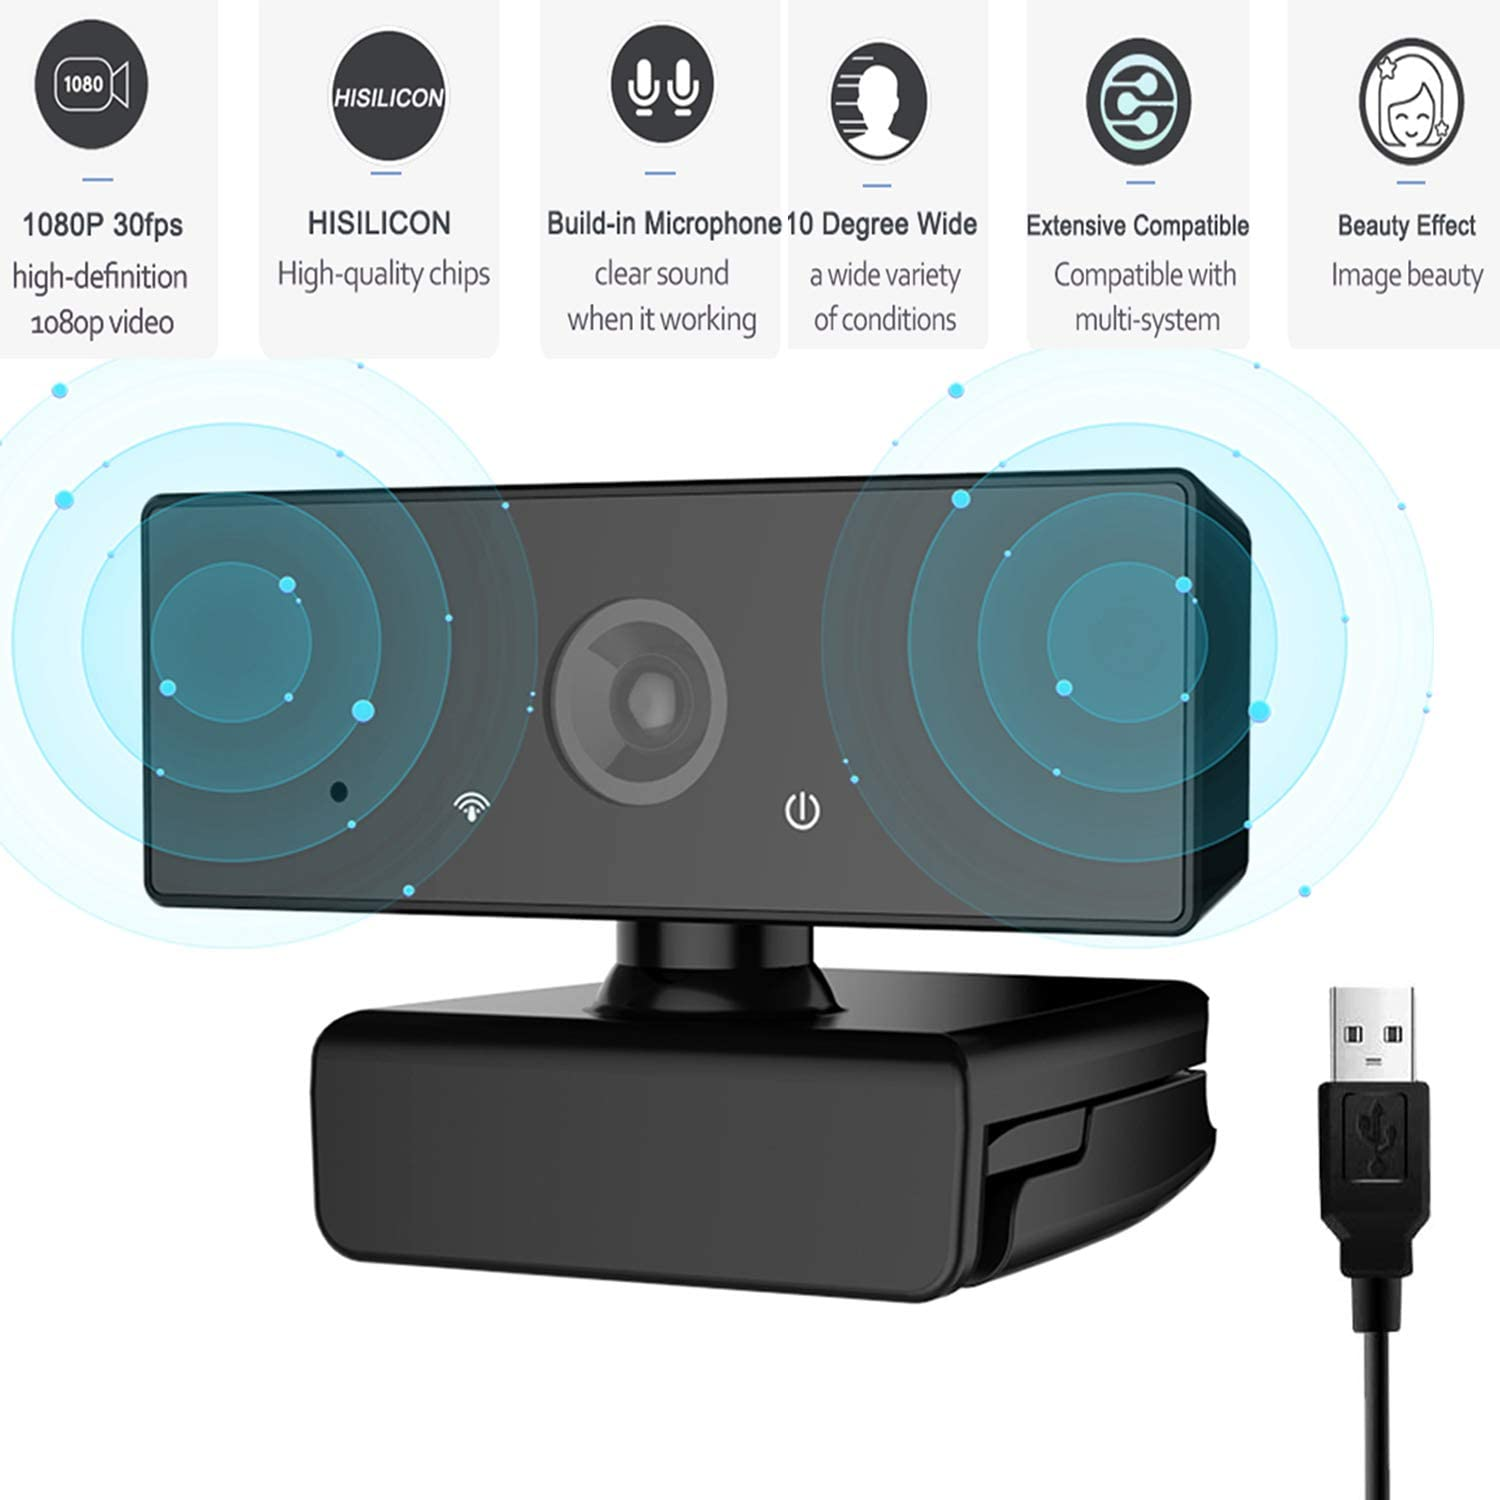 XCH Robots Streaming Webcam with Microphone for HD 1080p, Desktop with Built-in Microphone, Widescreen Video Calling and Recording, Desktop Or Laptop Notebook Webcam (B60)